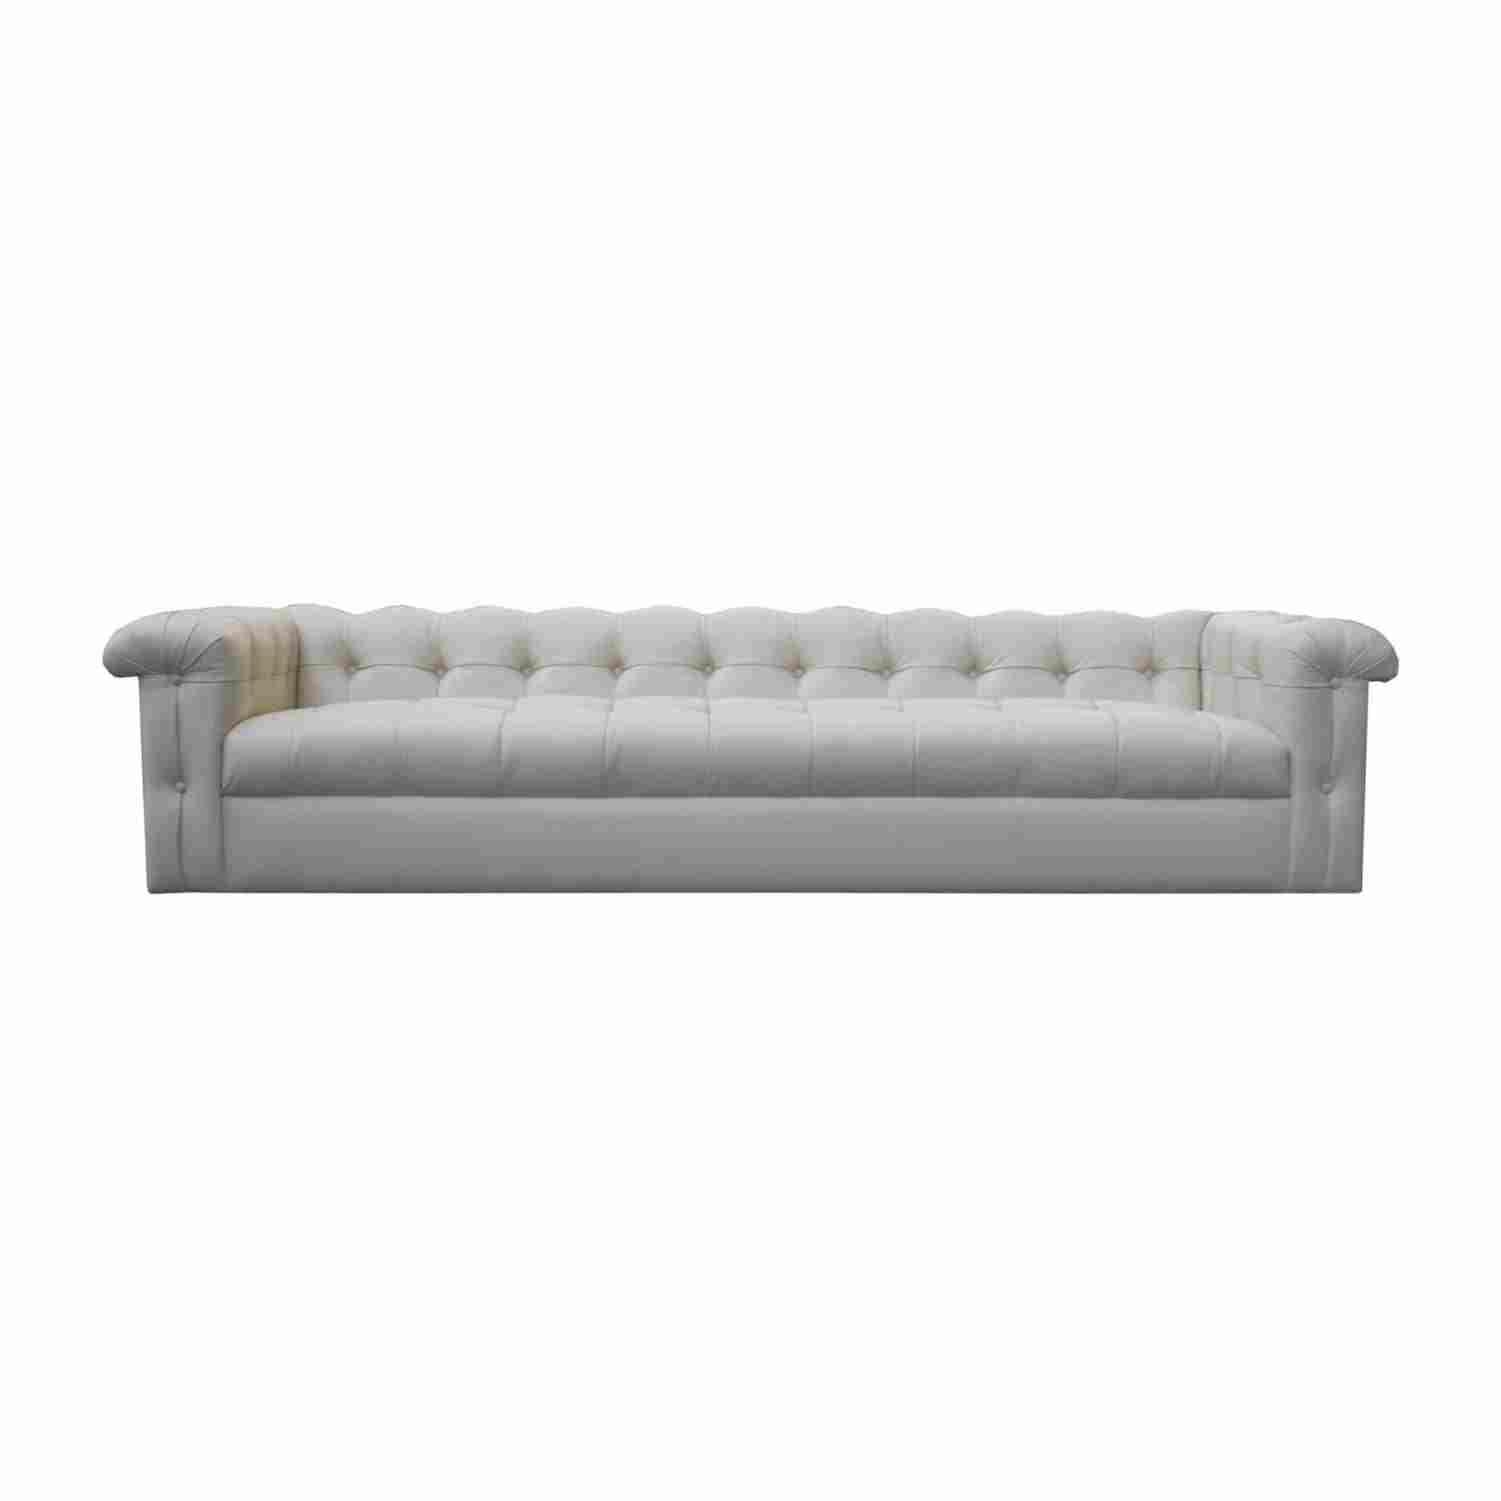 Sofa Set Simple Designs | Sofa And Chair Information With Regard To Simple Sofas (Photo 19 of 20)